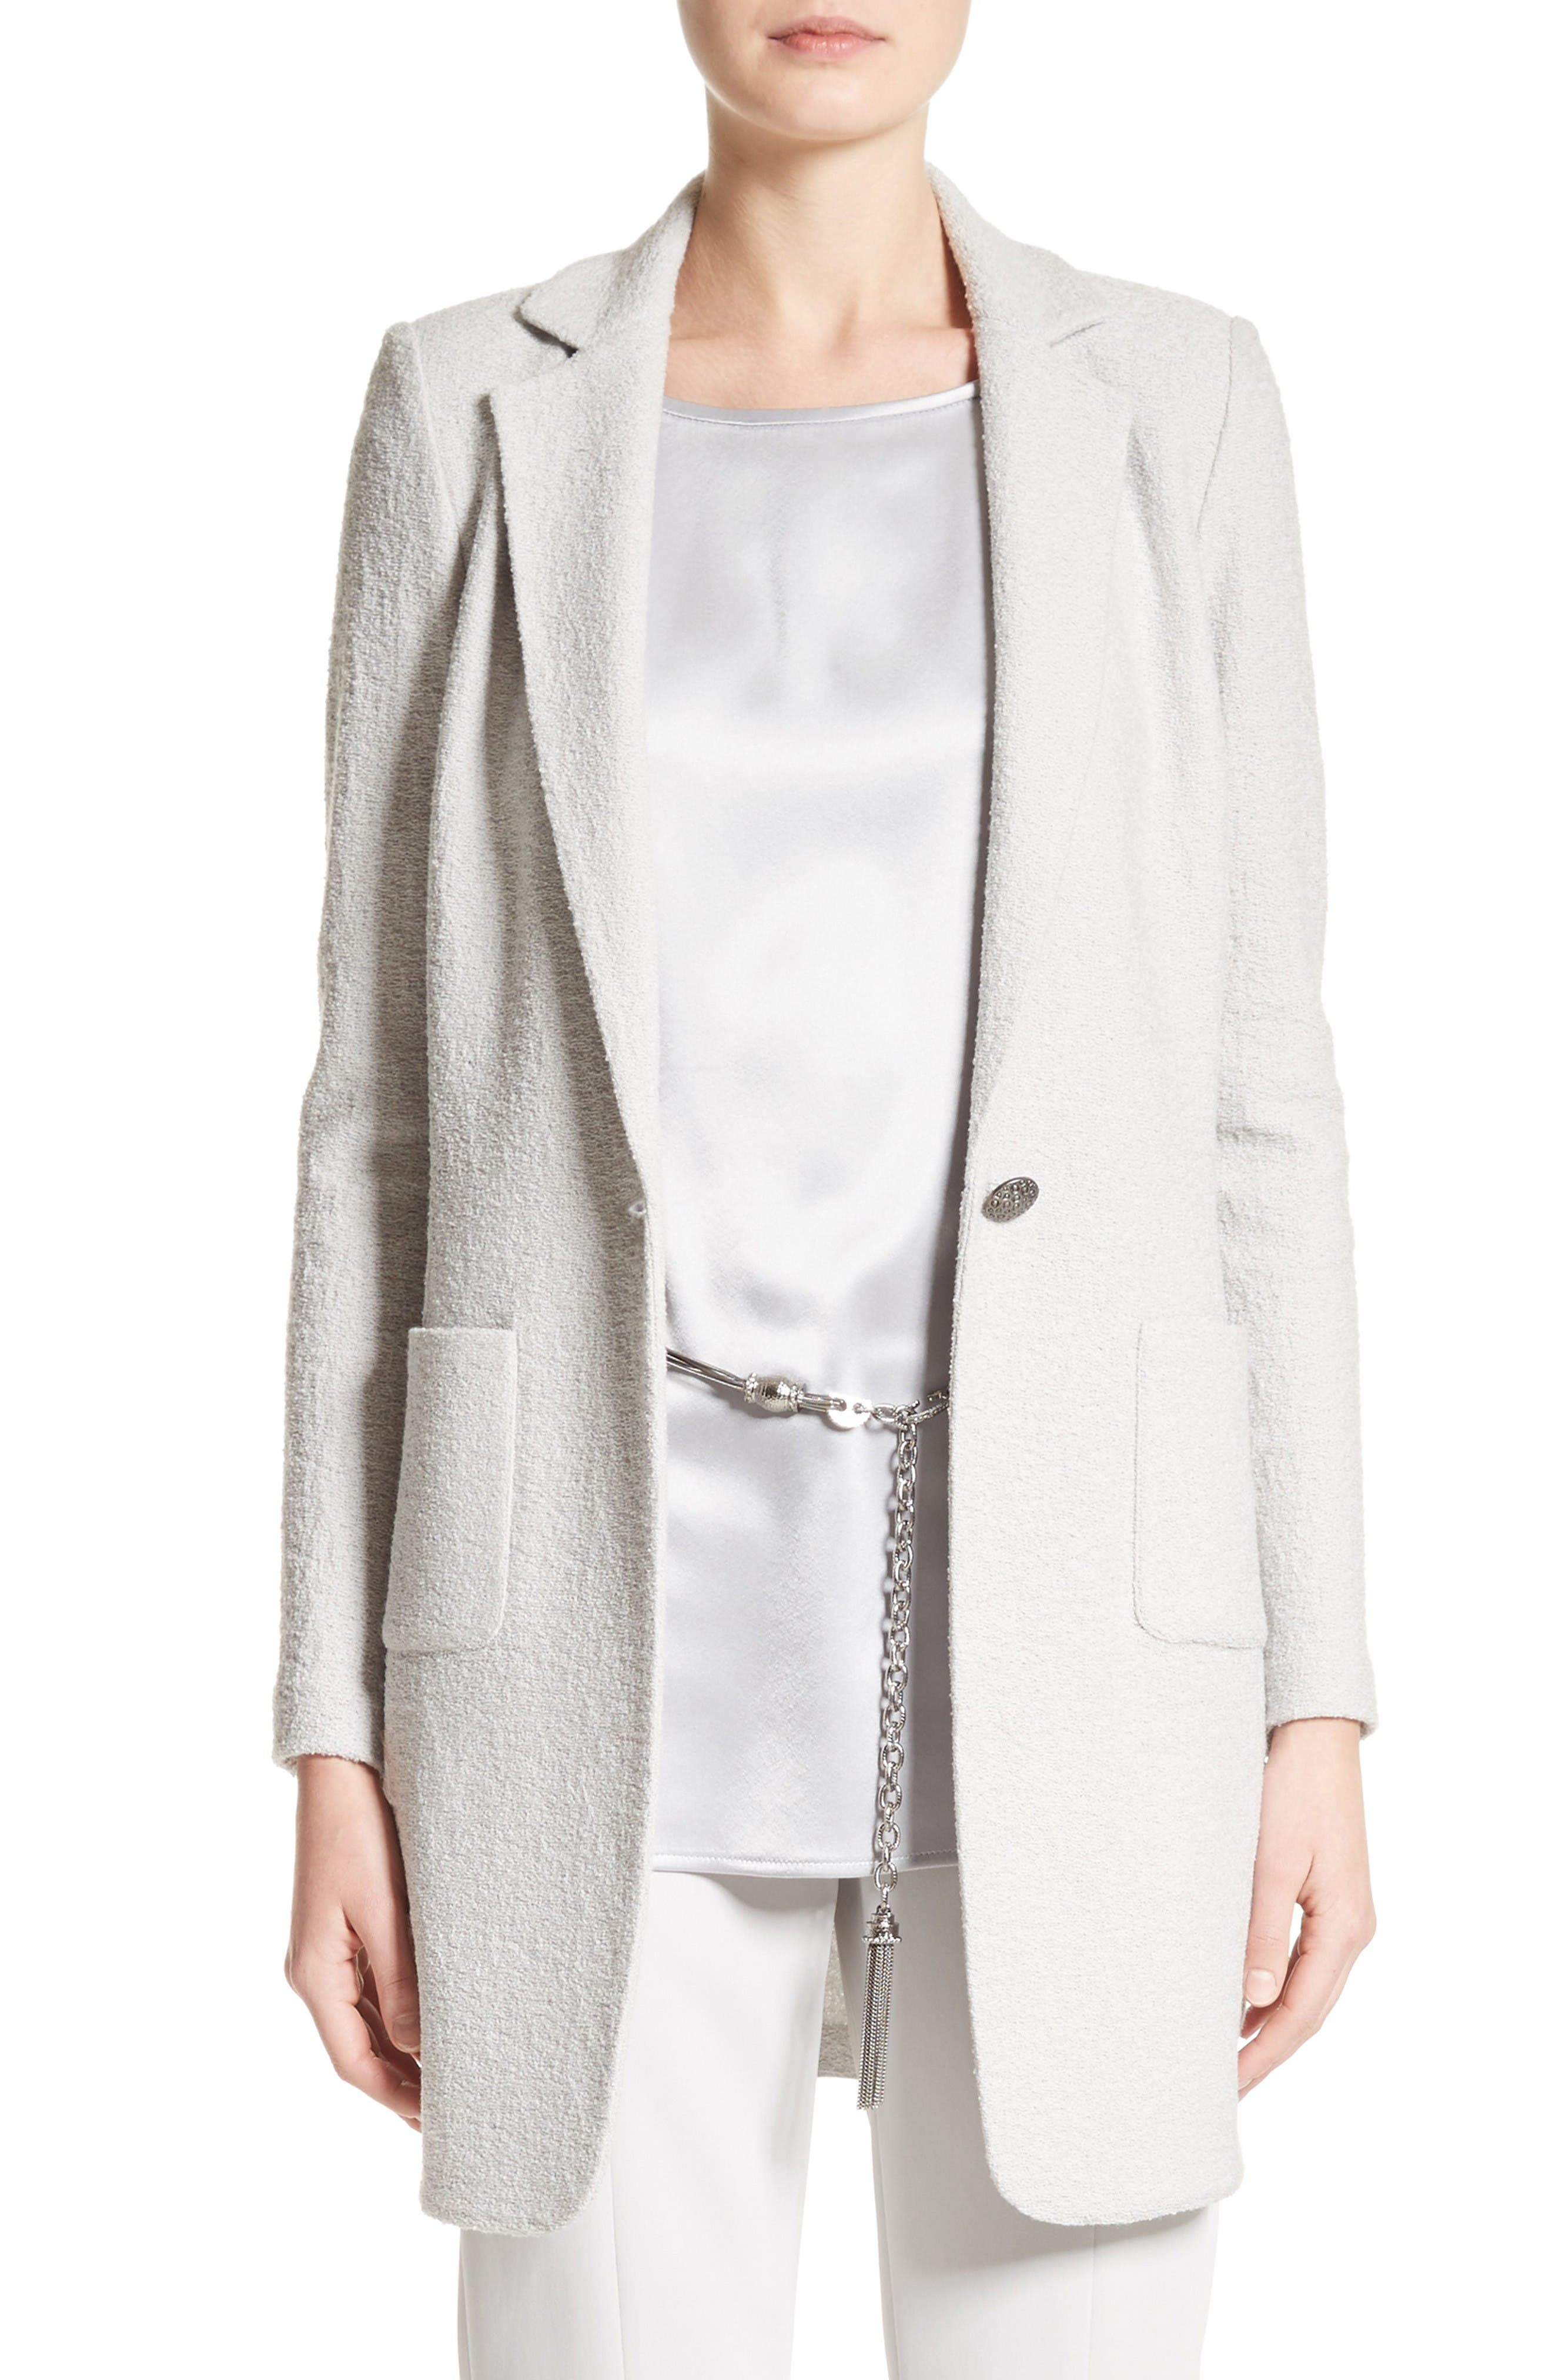 Alternate Image 1 Selected - St. John Collection Clair Knit Jacket